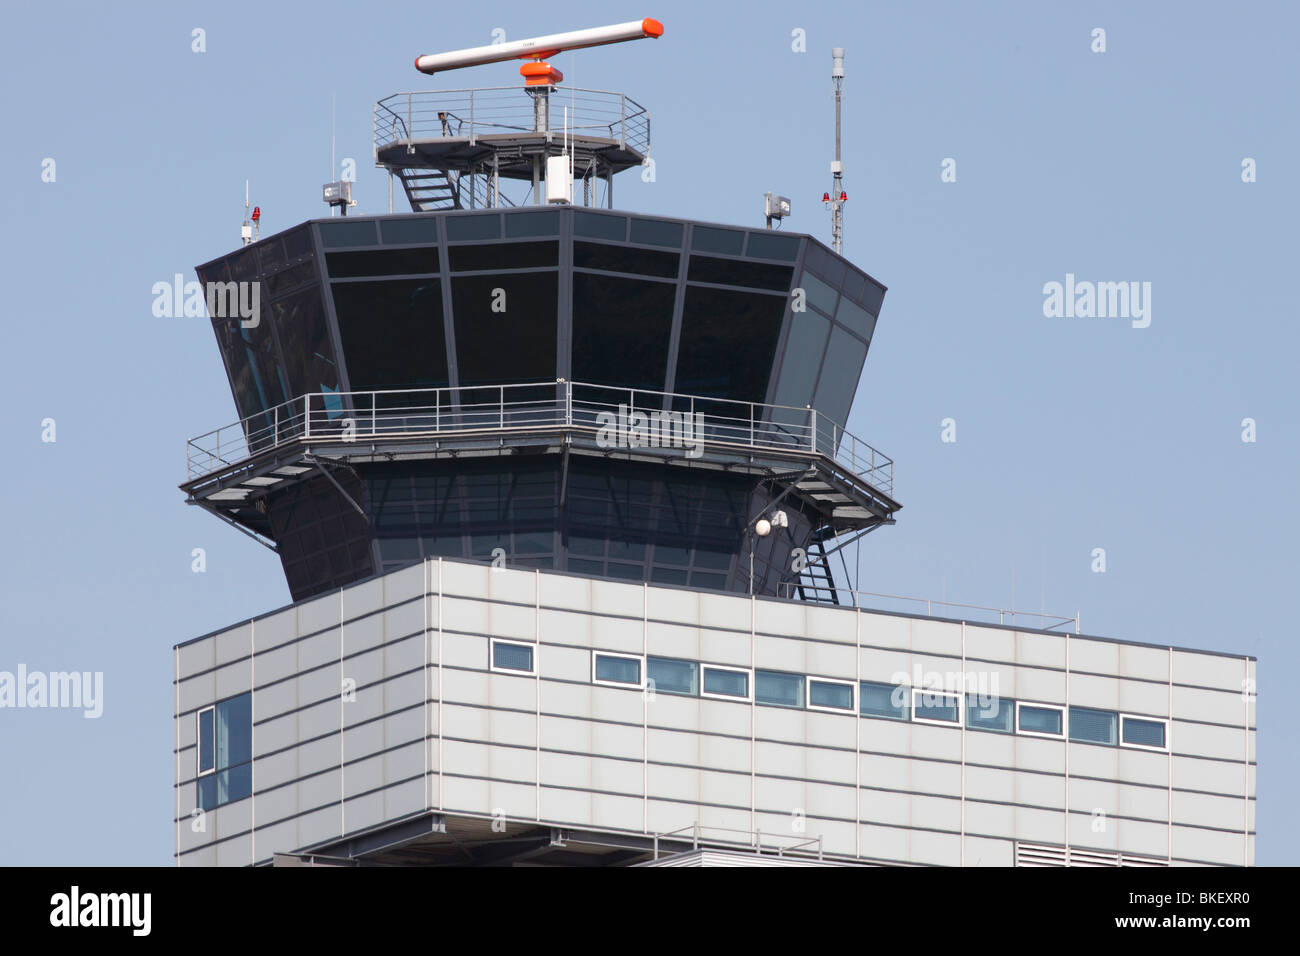 air traffic control tower at the airport Leipzig-Halle, Germany - Stock Image